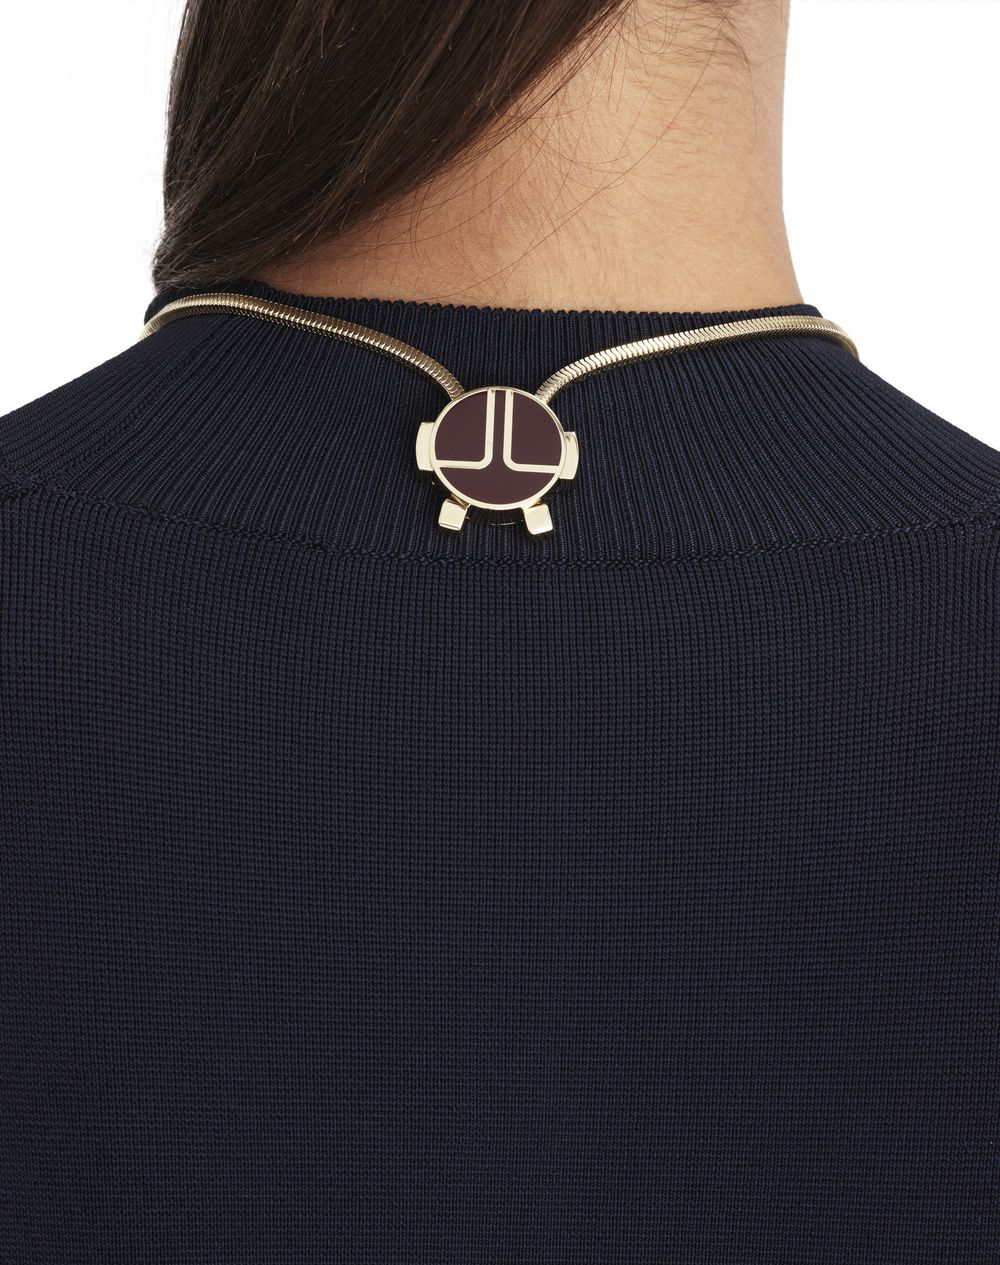 "TWO-TONED ""NEW ELLIPTIQUE"" NECKLACE - Lanvin"